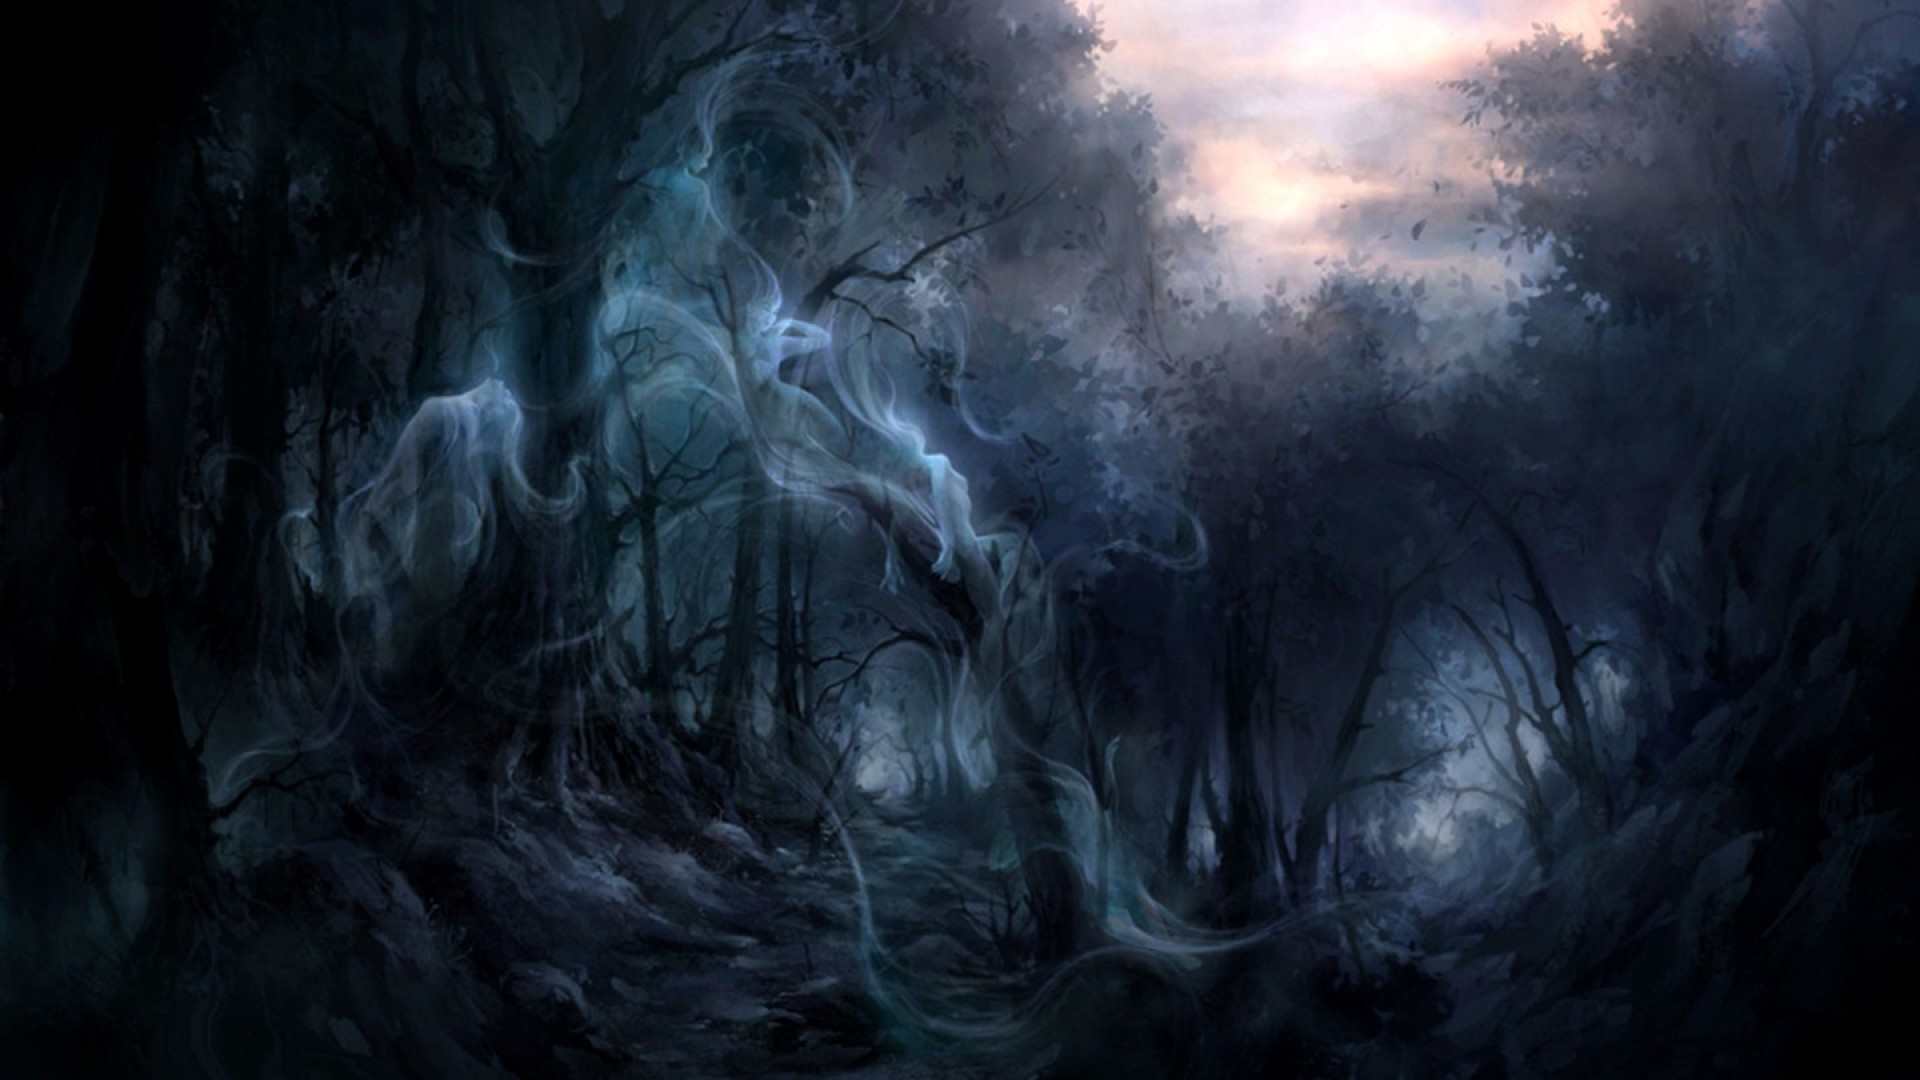 Dark Enchanted Forest Ghost Full Screen Wallpaper Enchanted Forest 151760 Hd Wallpaper Backgrounds Download